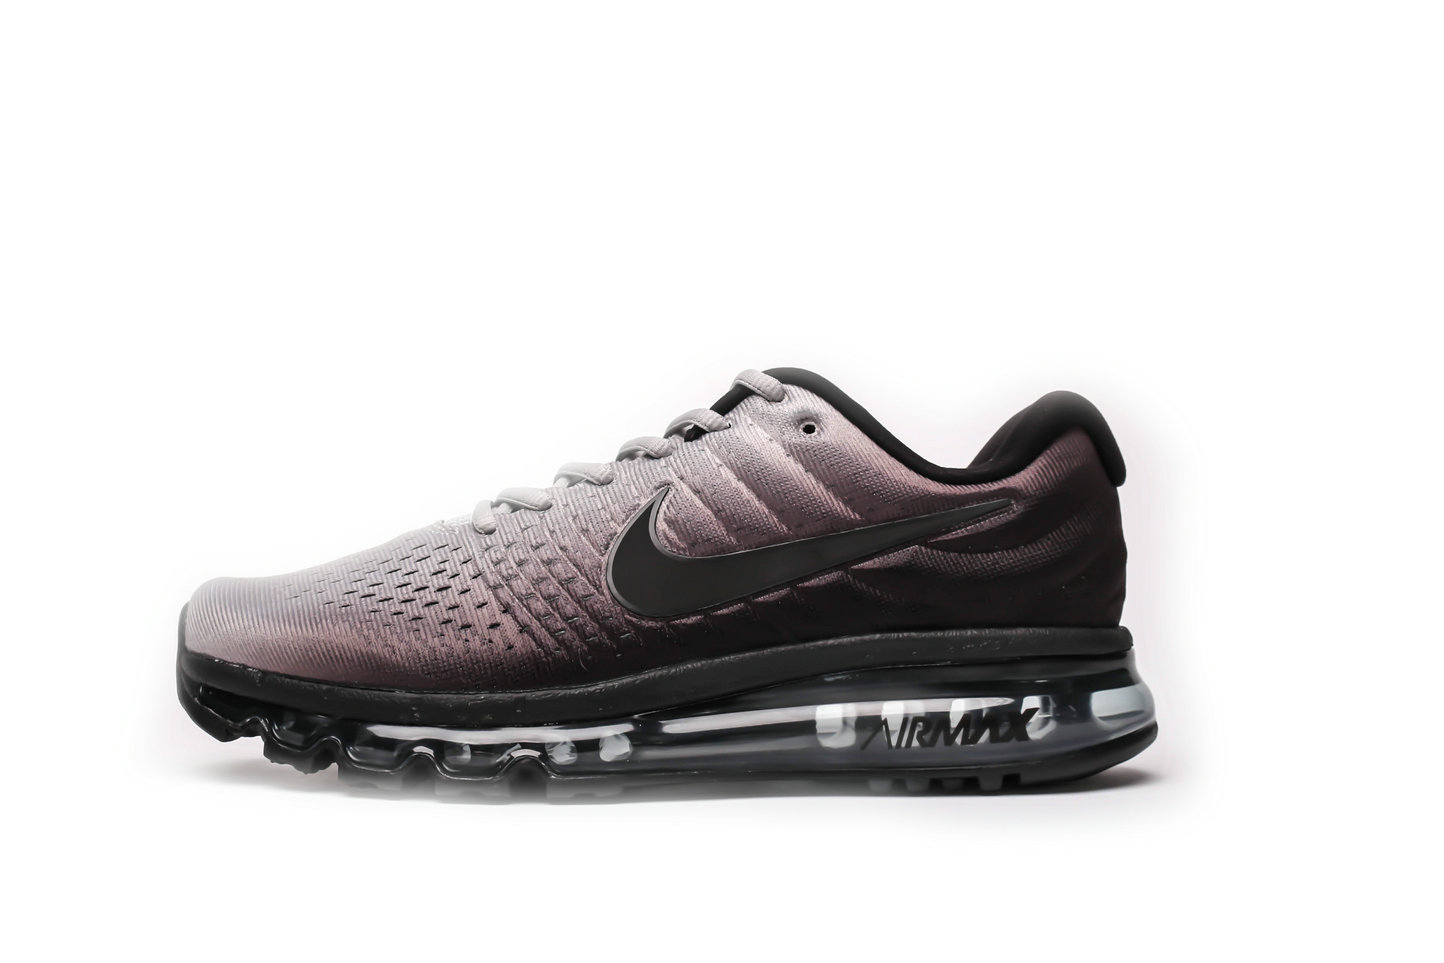 2021 Wholesale Cheap Nike Air Max 2017 Classic Rose Pink Black - www.wholesaleflyknit.com